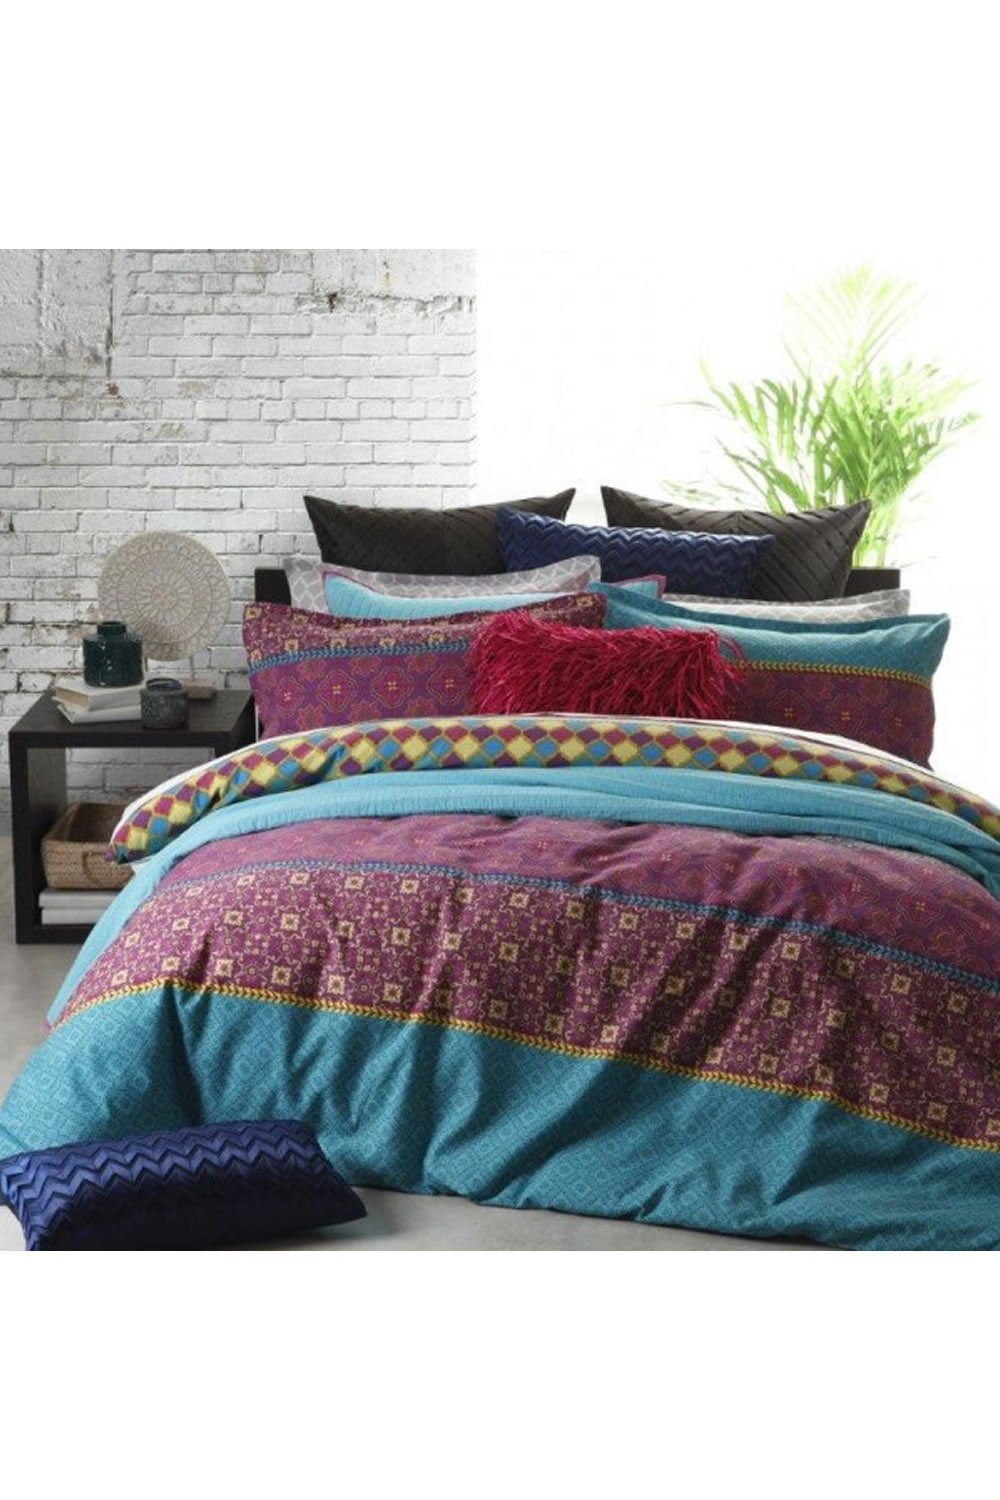 Logan and Mason Gypsy Jewel Quilt Cover Set